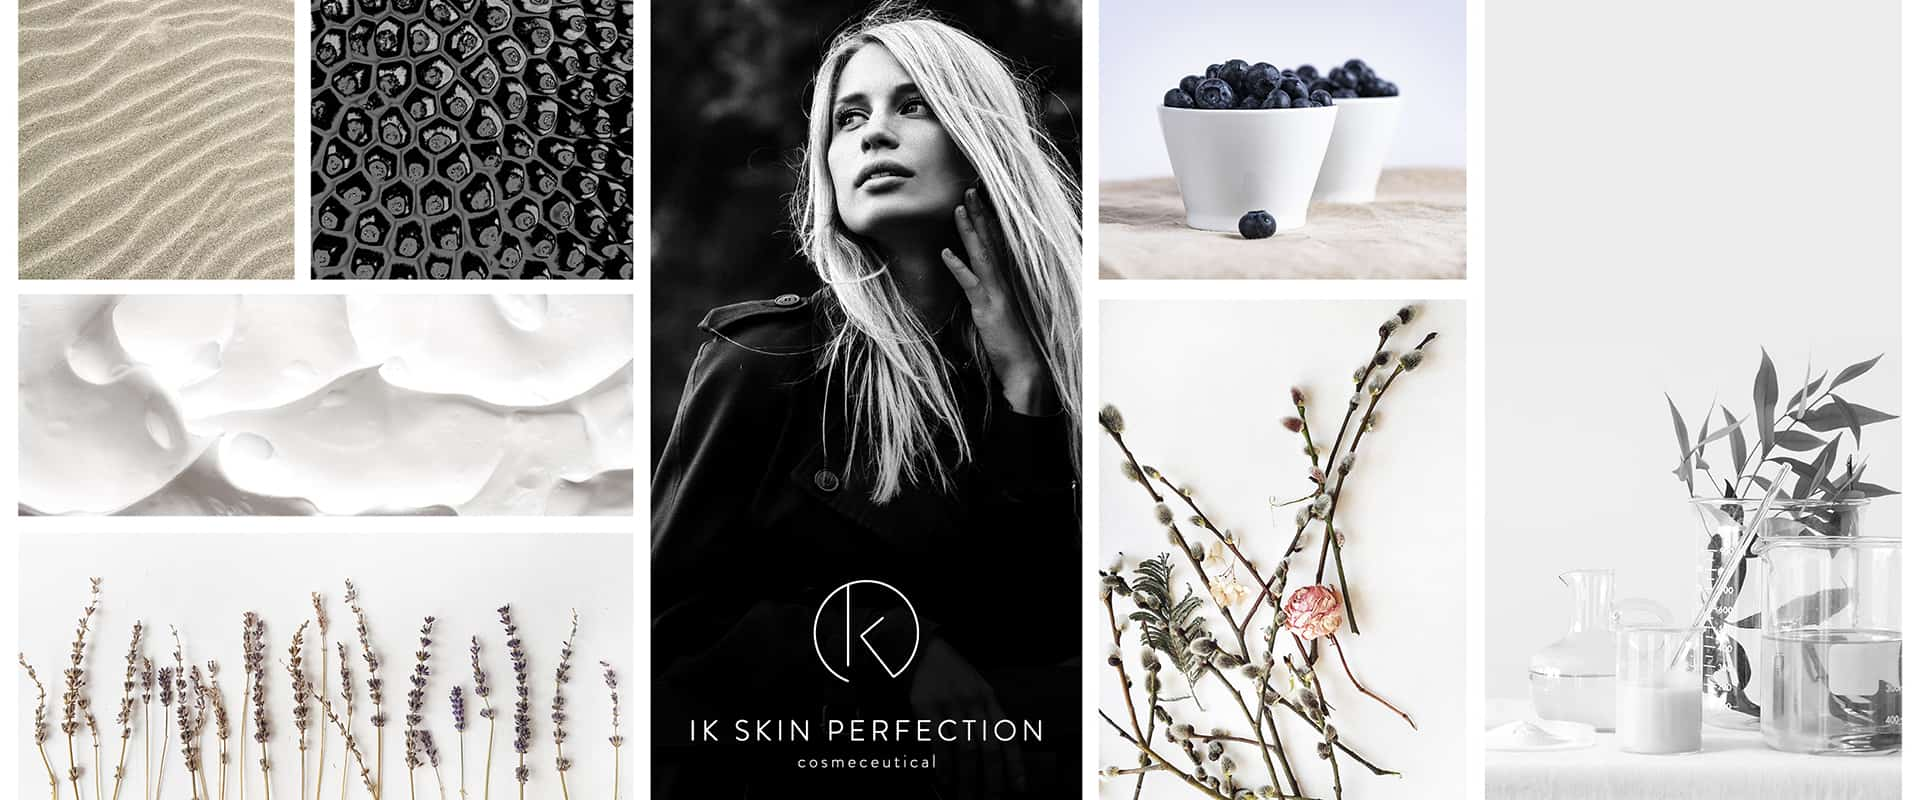 Petra Barthen Professional Skincare & IK Skin Perfection